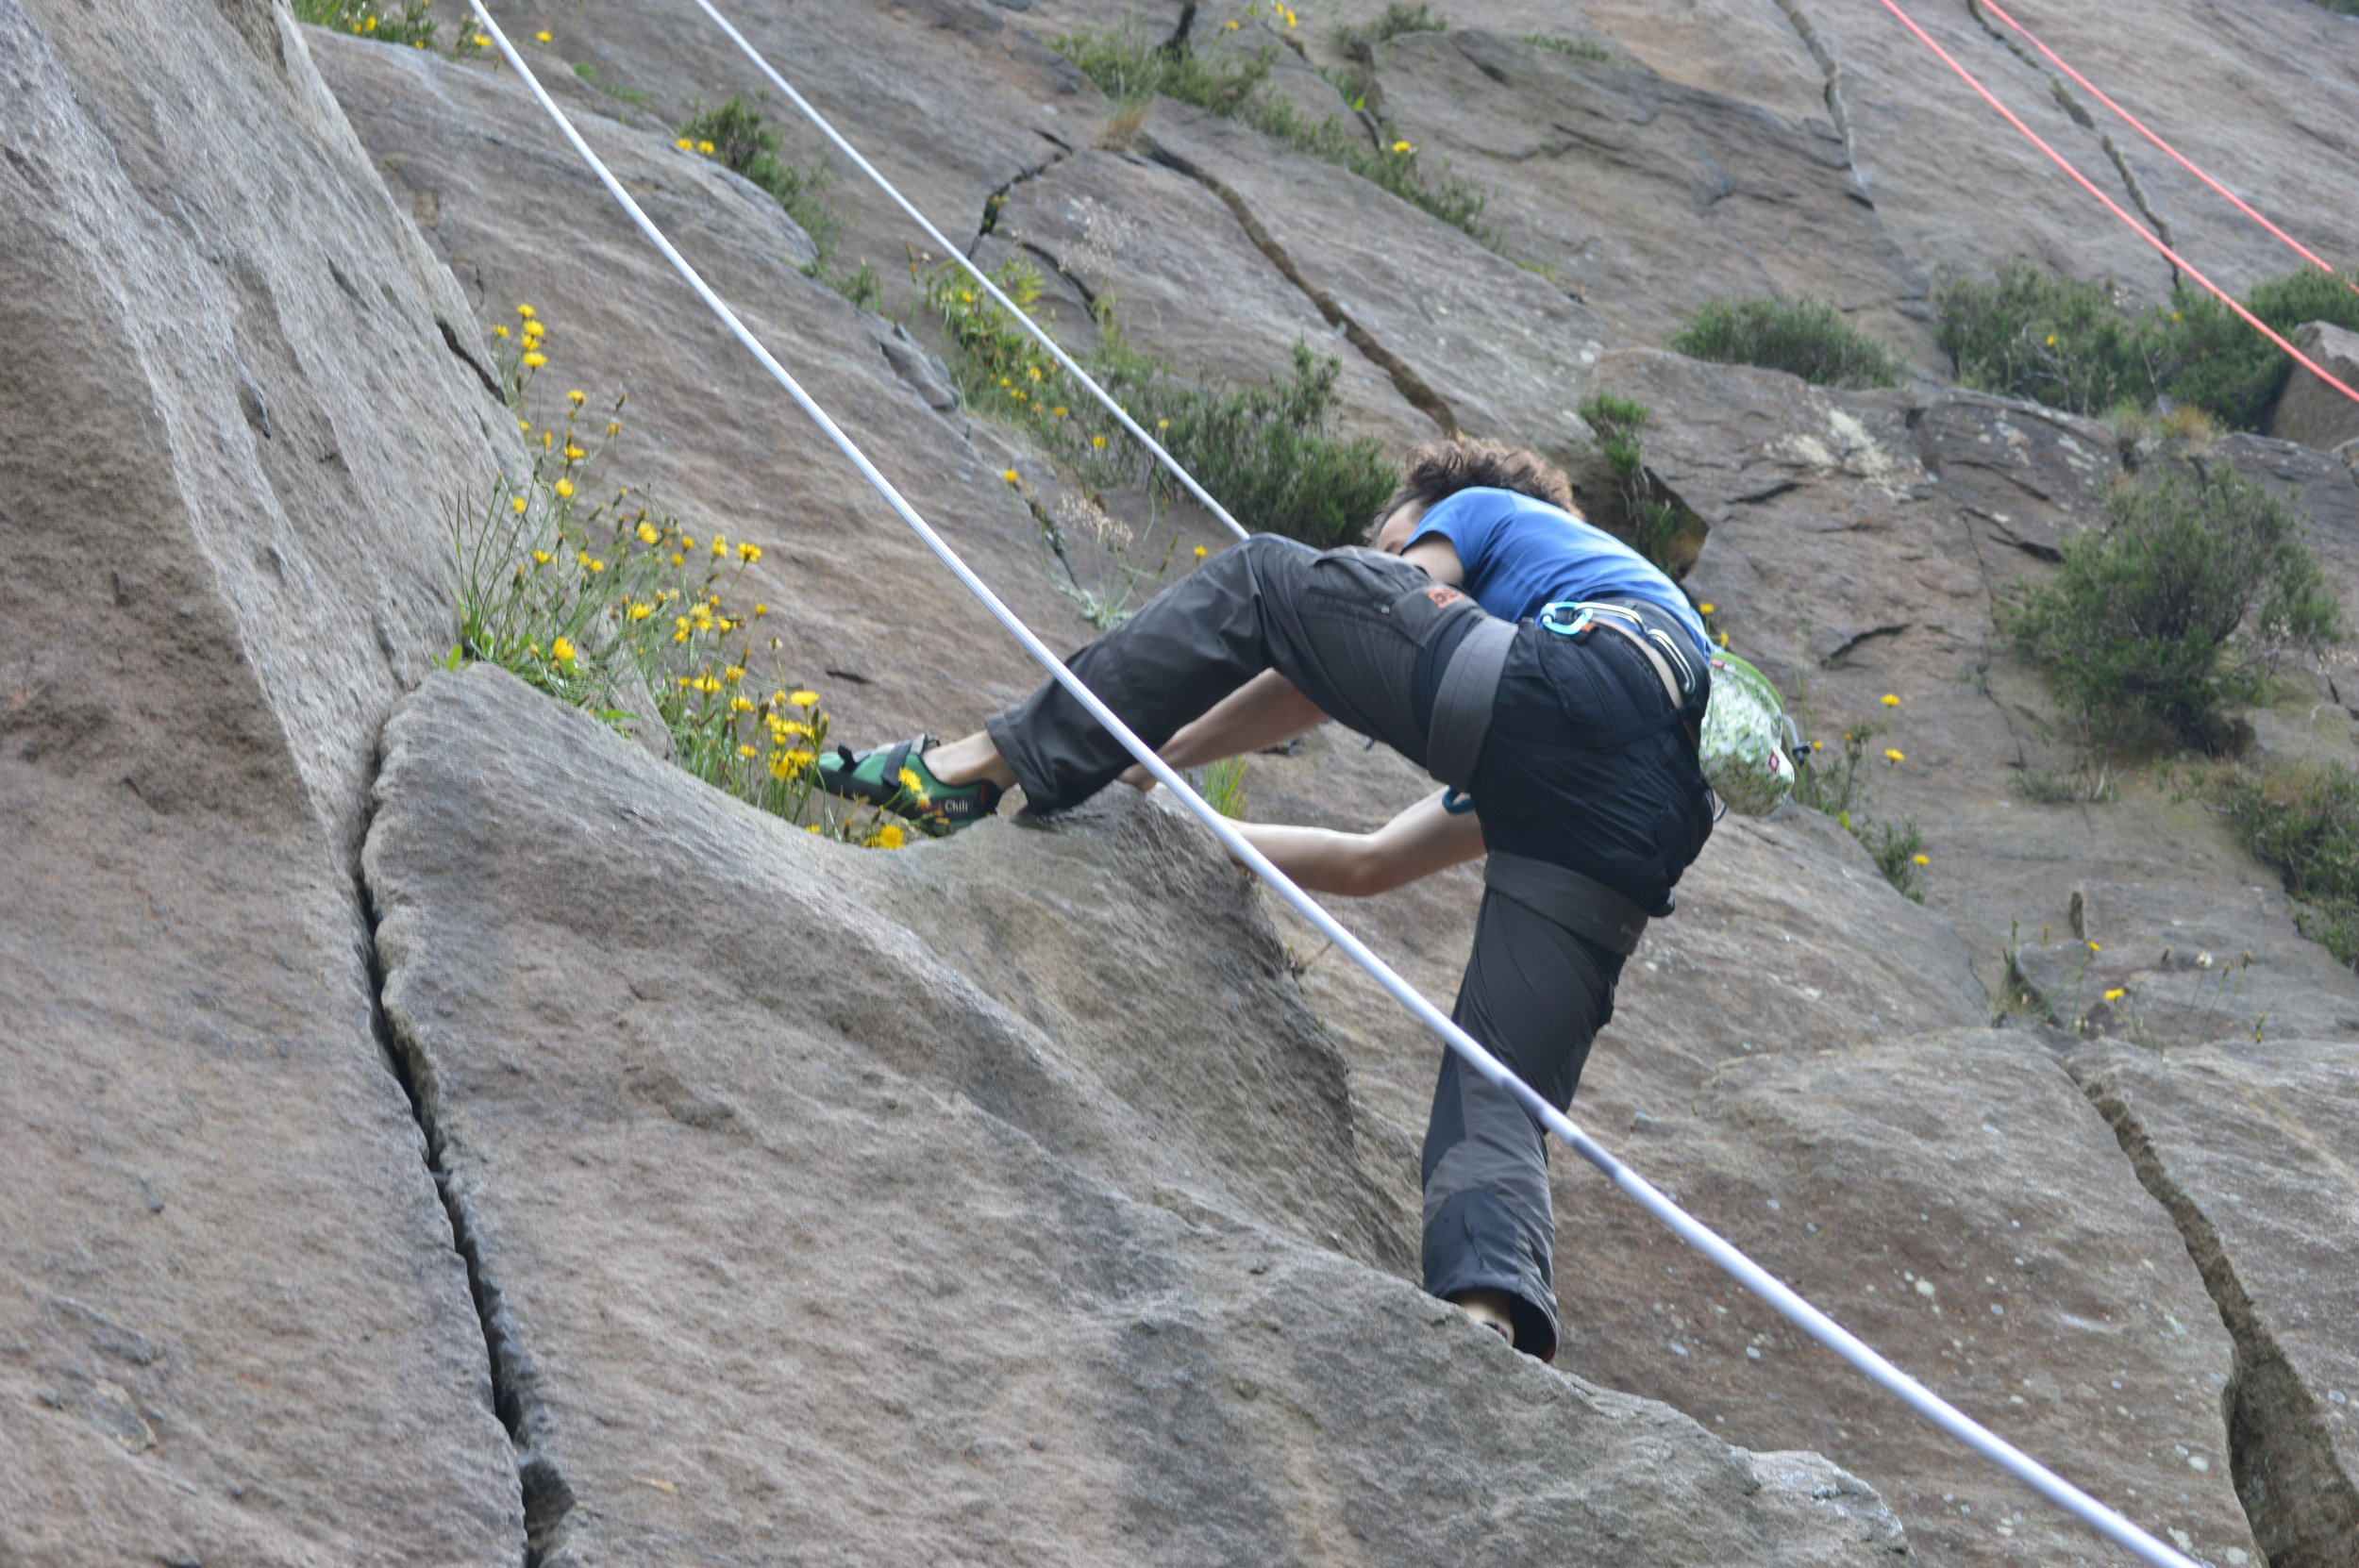 Chris climbing in the Peak District.  Photo by Georgie Bull.